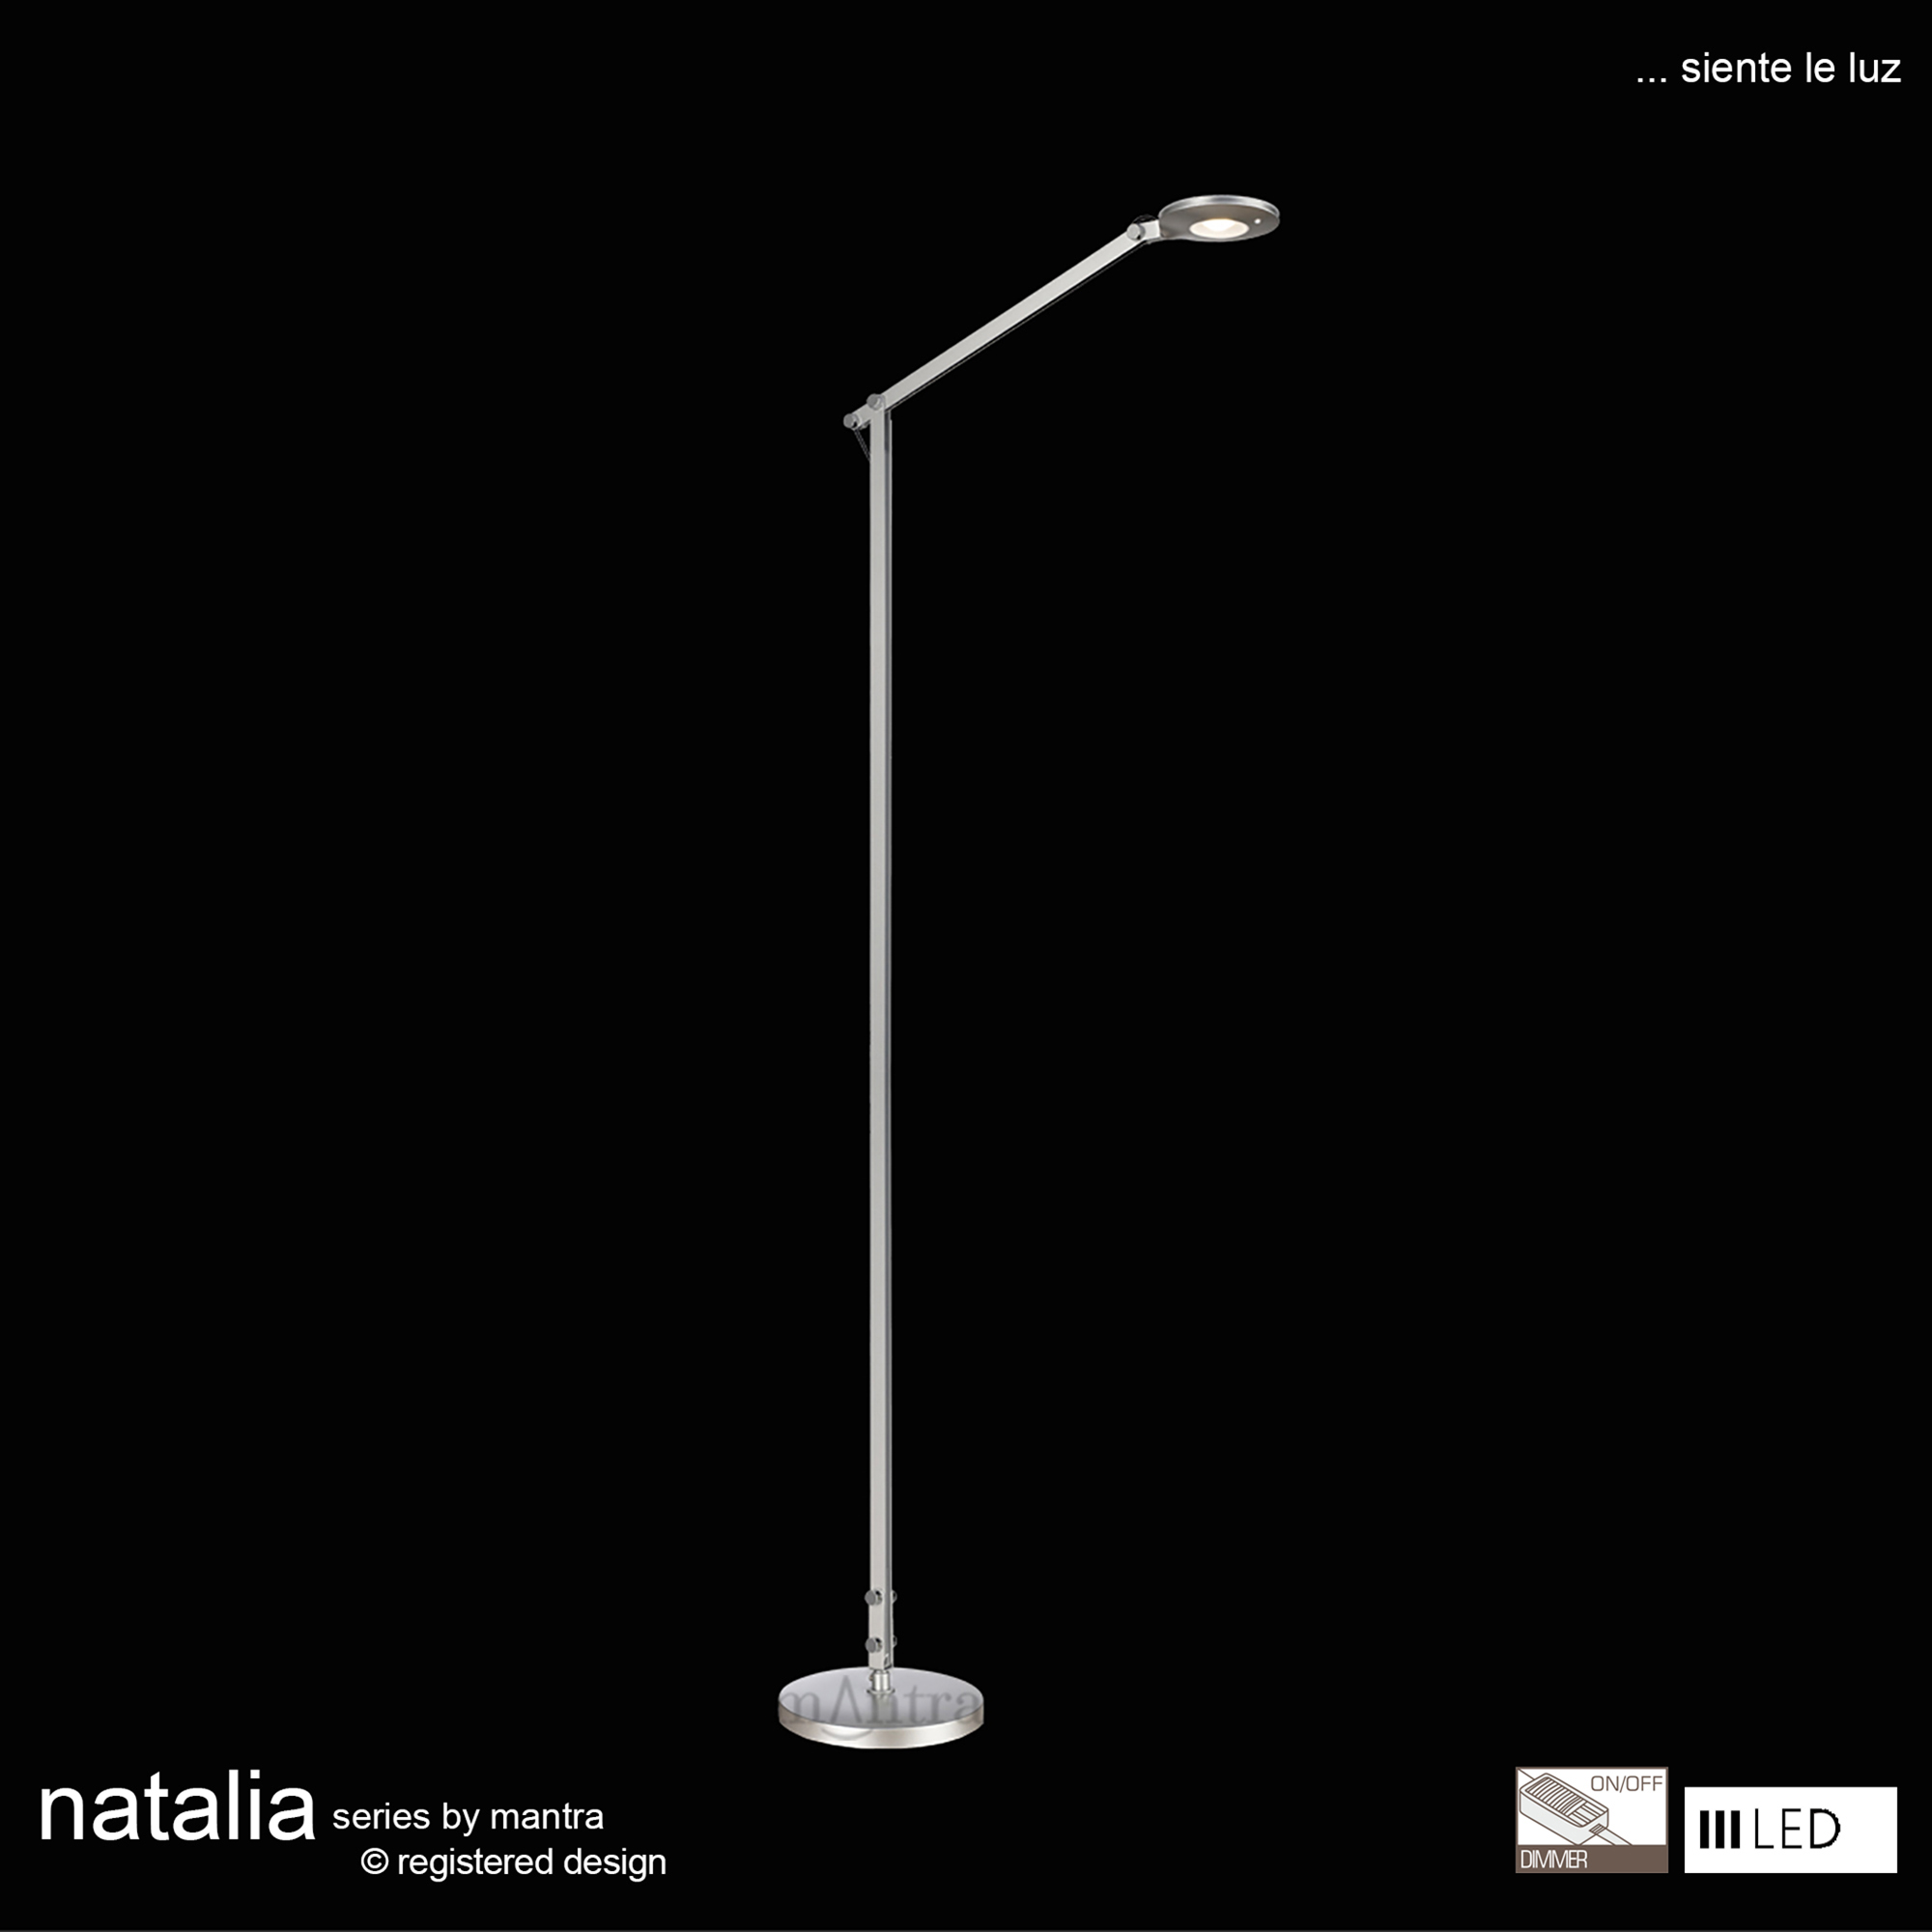 Natalia Table Lamps Mantra Fusion Desk Lamp